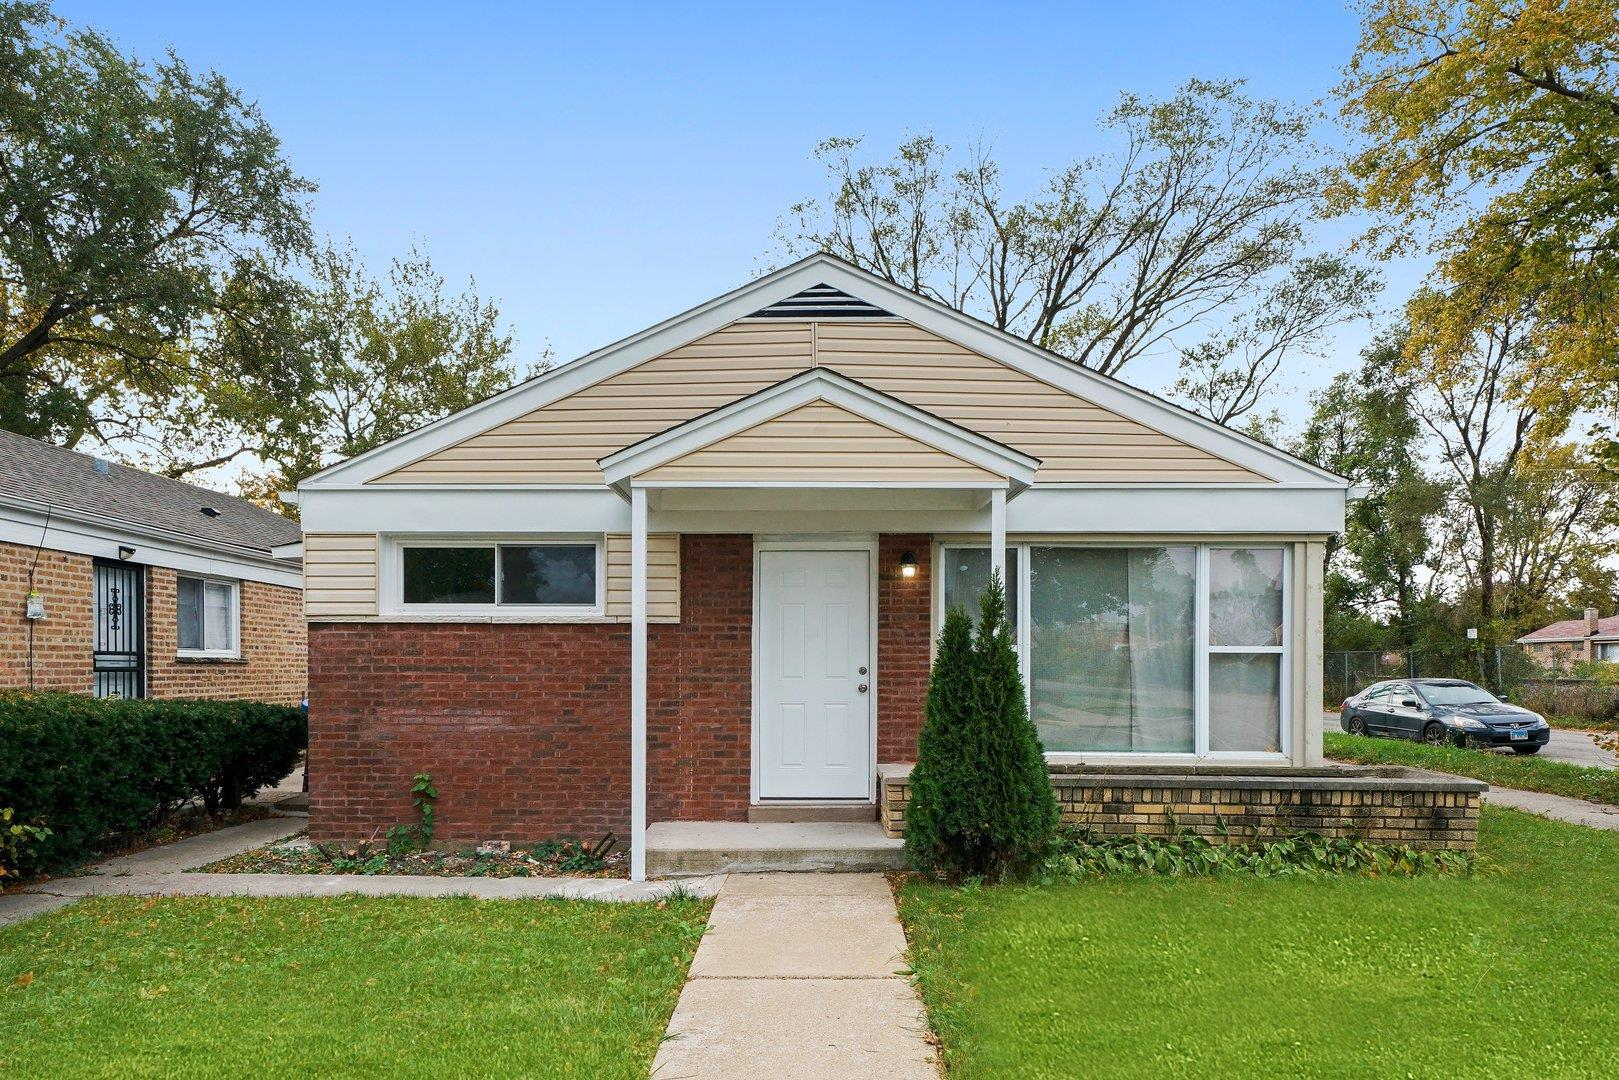 3553 W 80th Place, Chicago, IL 60652 - #: 10973950